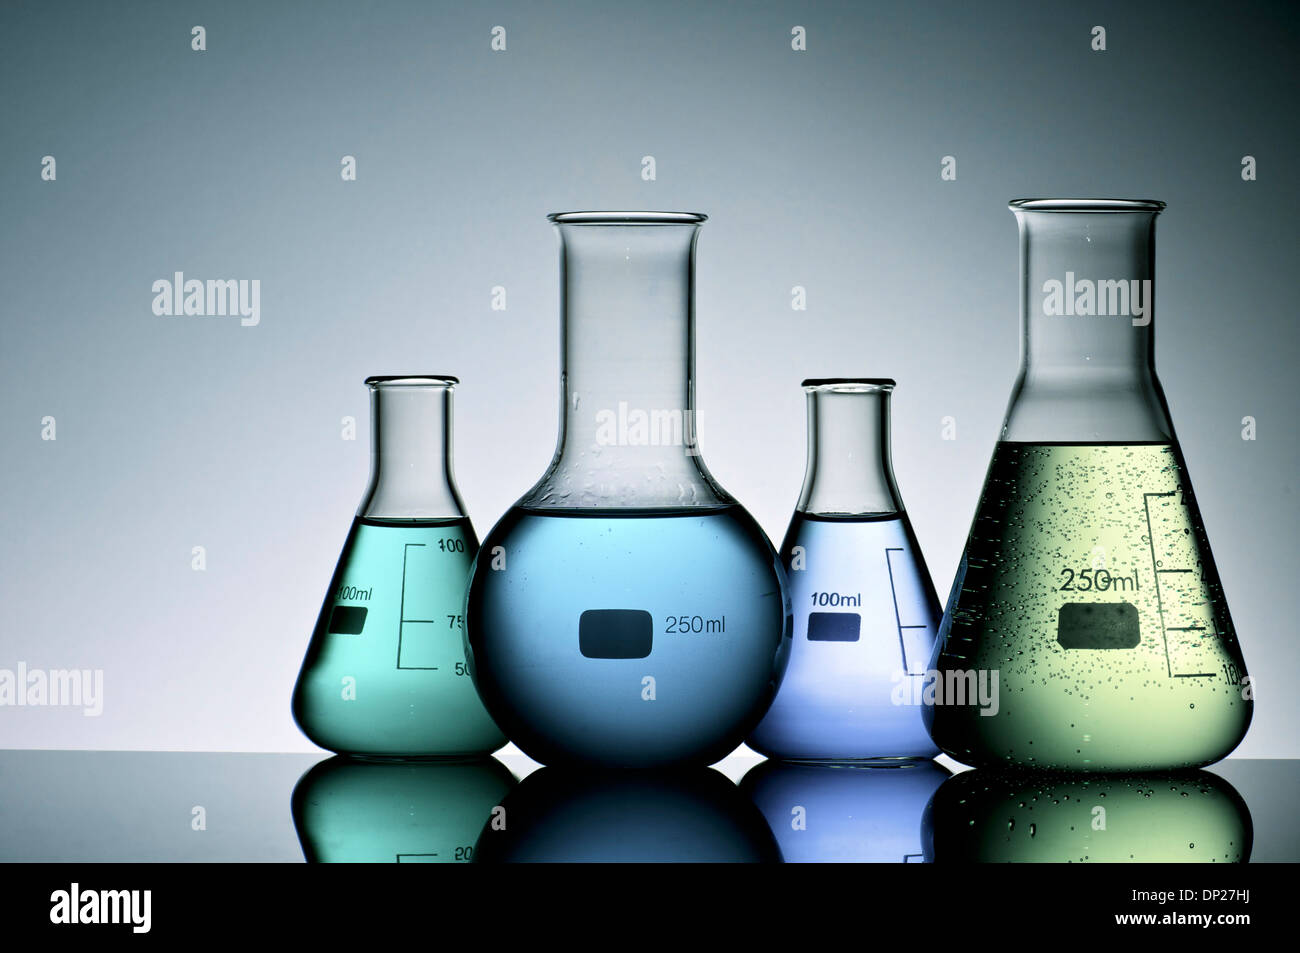 group of laboratory flasks with liquid inside - Stock Image